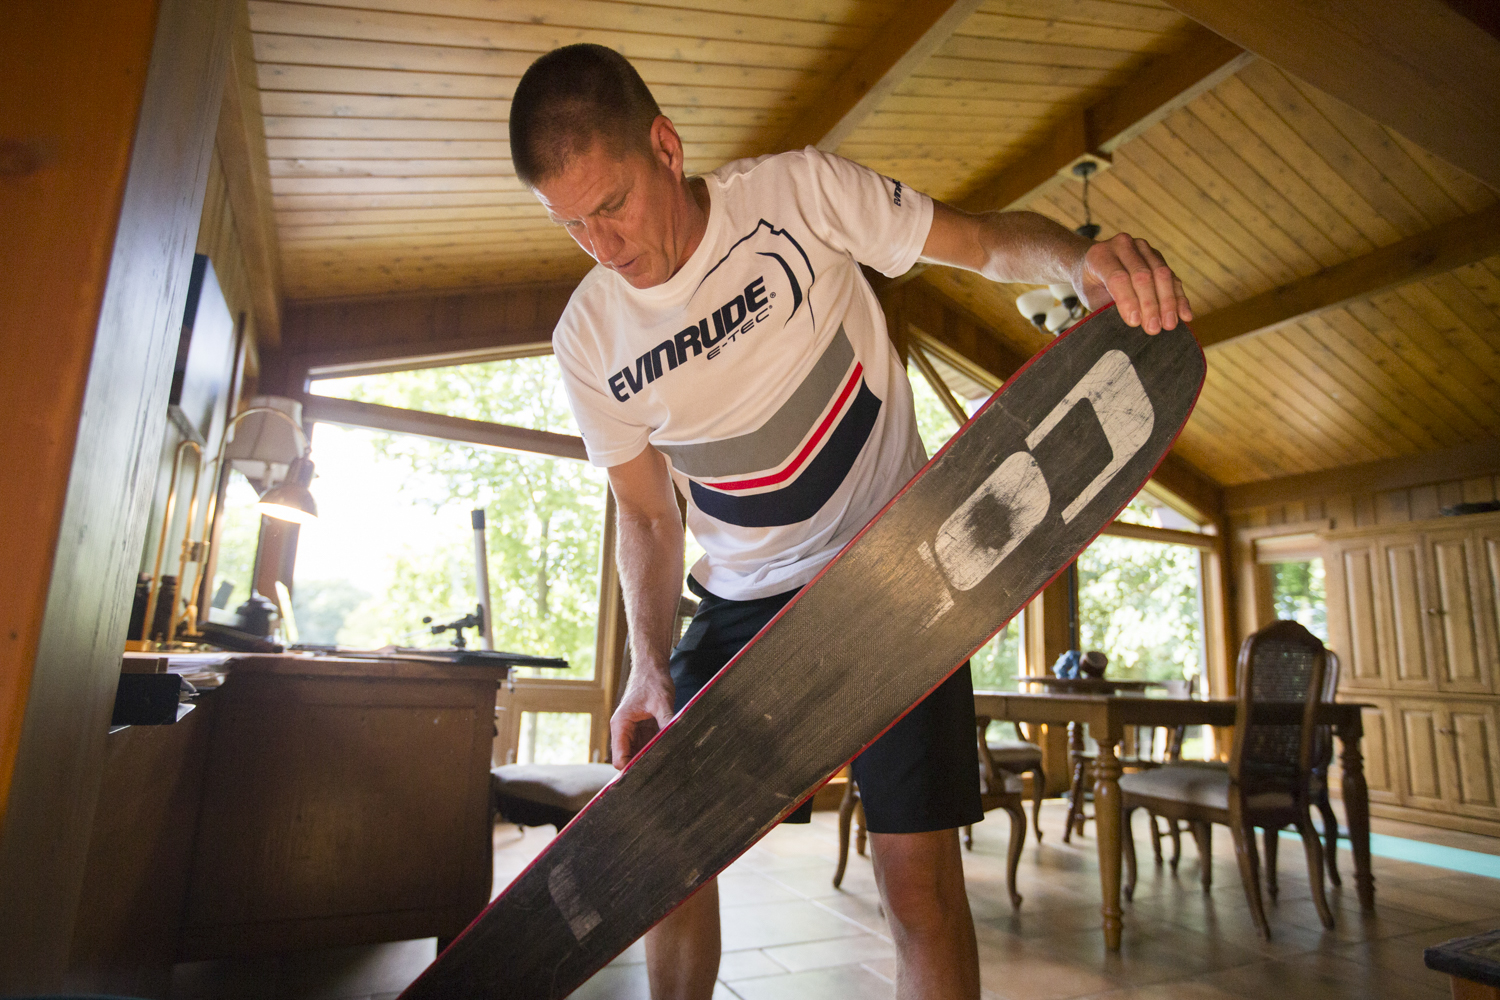 Randy Seerup shows how he saves broken skis so he can reshape them into different, smaller style of ski on Friday, Aug. 17, 2018, at his home in Machesney Park. The Seerup family is heavily involved with the Ski Broncs. Wendy Seerup, Randy's wife, sometimes manages show schedules and rosters. Their son, Brandon, is the 2018 season's show director, and the couple's 12-year-old daughter, Jada, can often be found high up on a multi-tier formation. [SCOTT P. YATES/RRSTAR.COM STAFF]